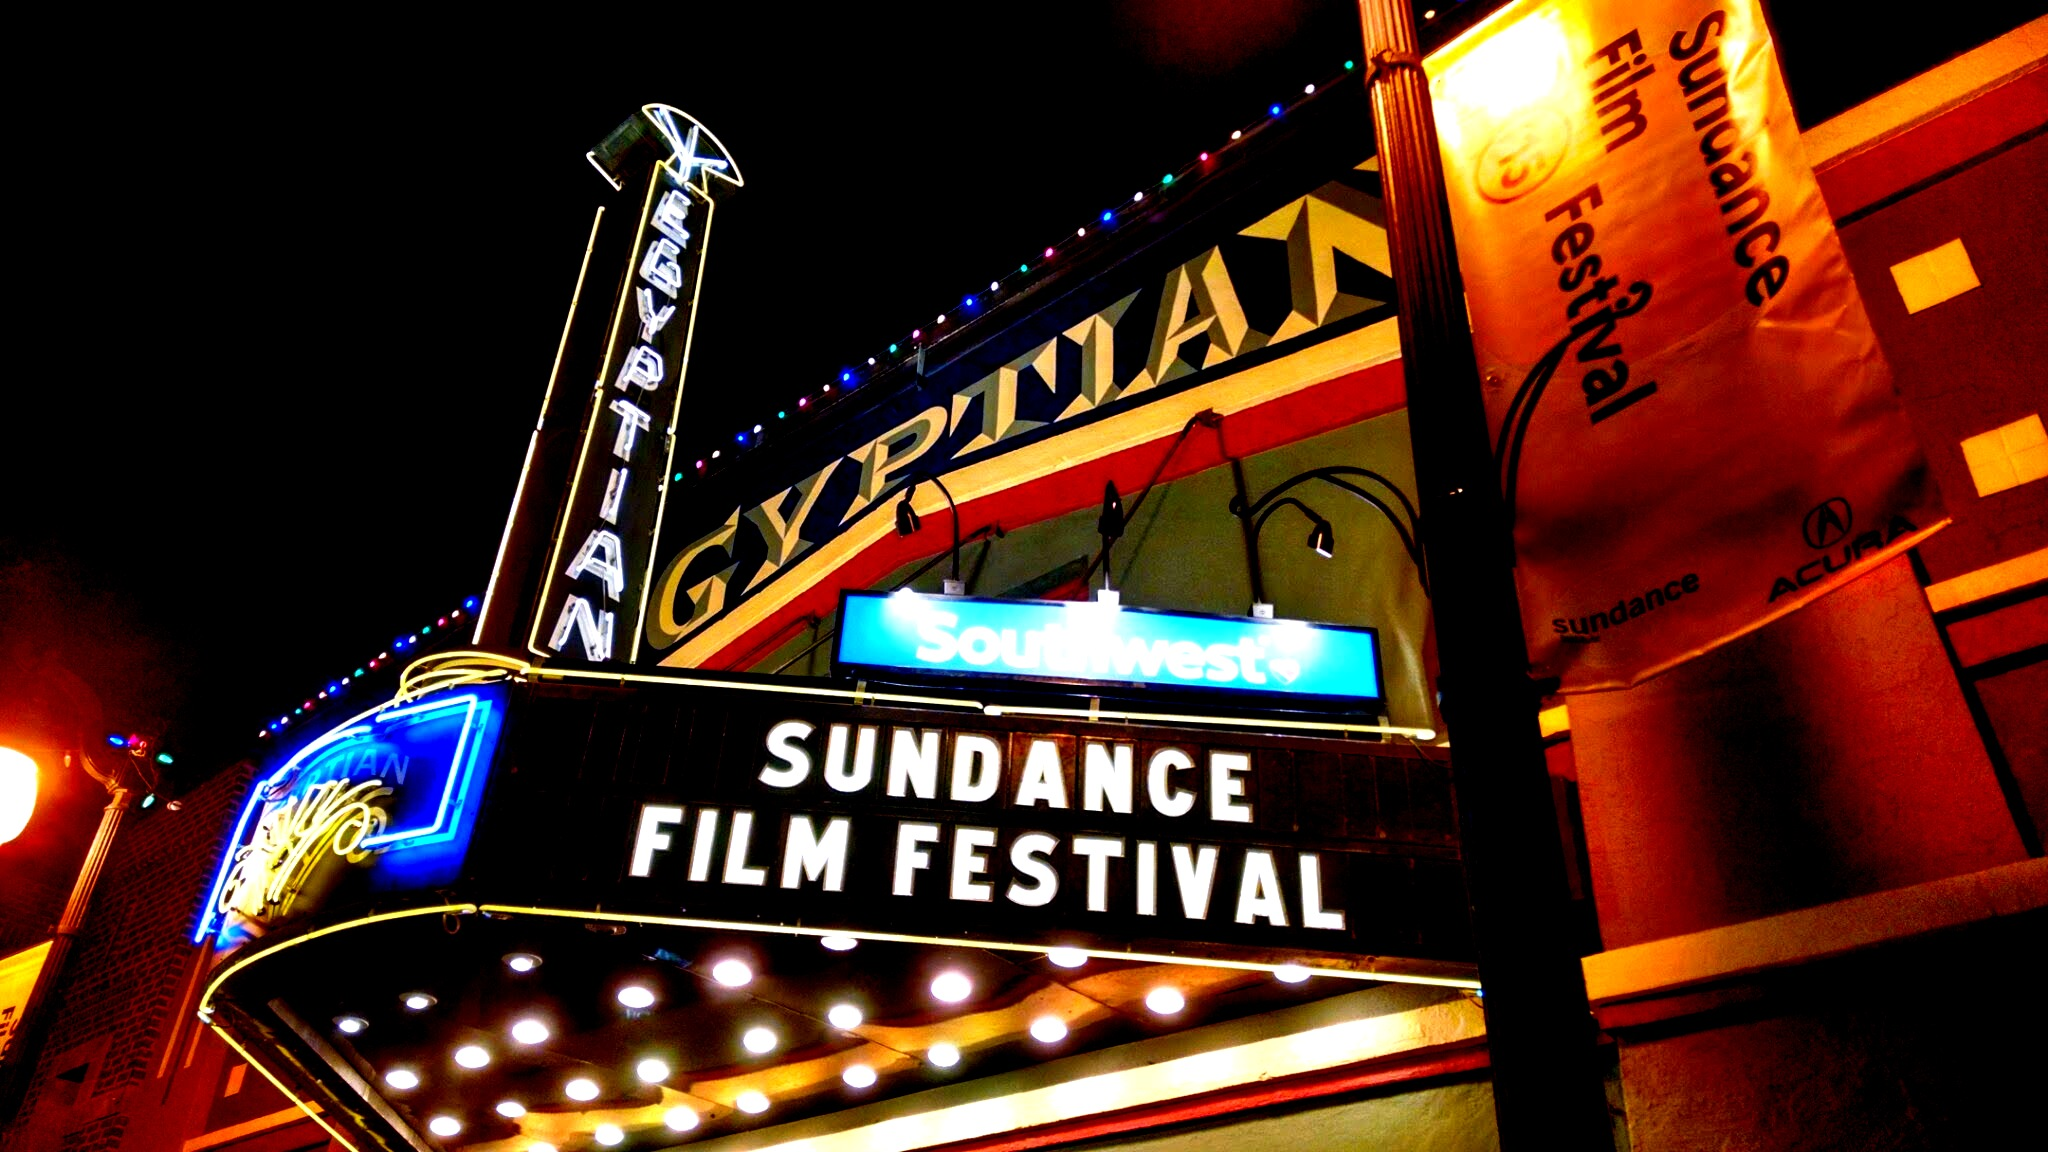 Sundance Film Festival 1 The Blair Witch Project: 20 Behind-The-Scenes Nuggets That Made It The Most Successful Film Ever